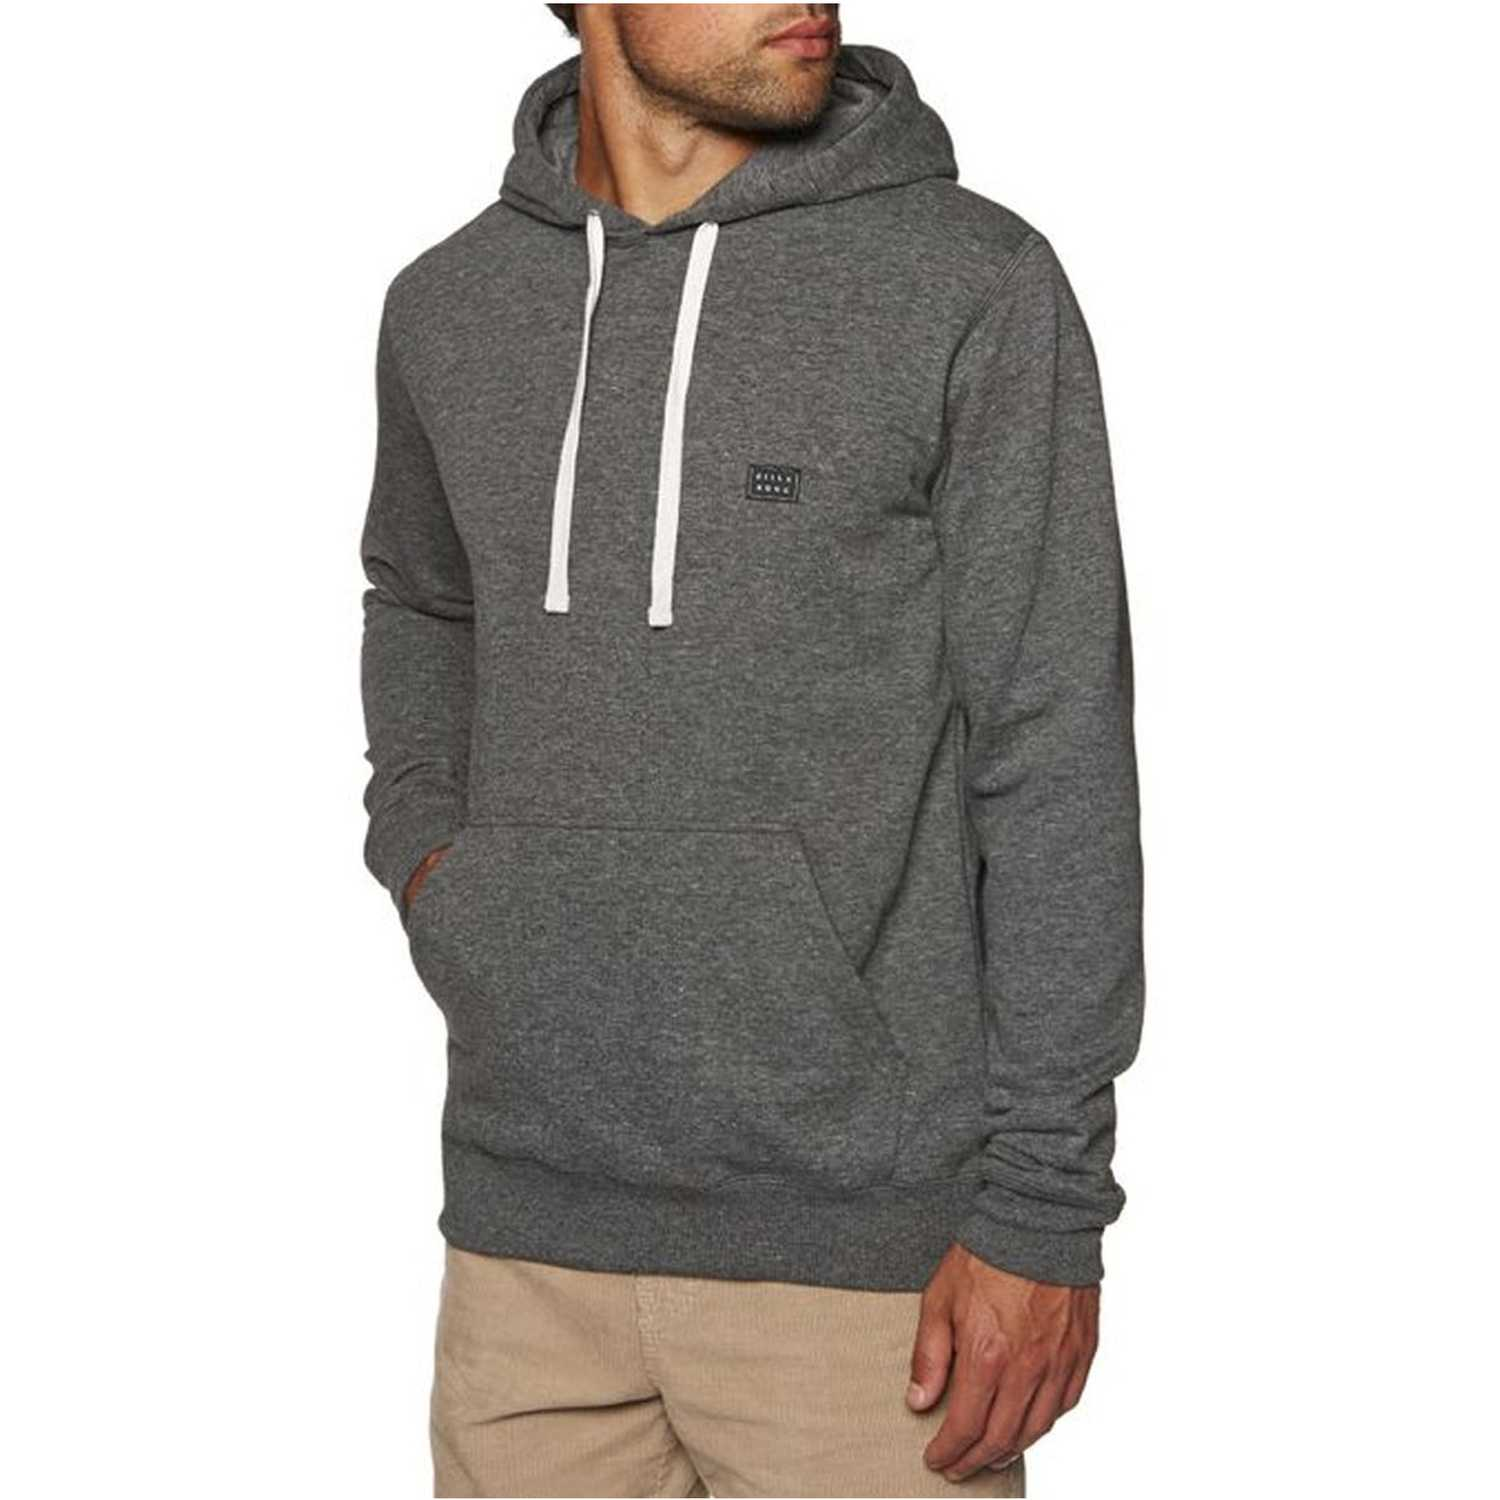 Billabong all day po hdy Negro Hoodies Deportivos